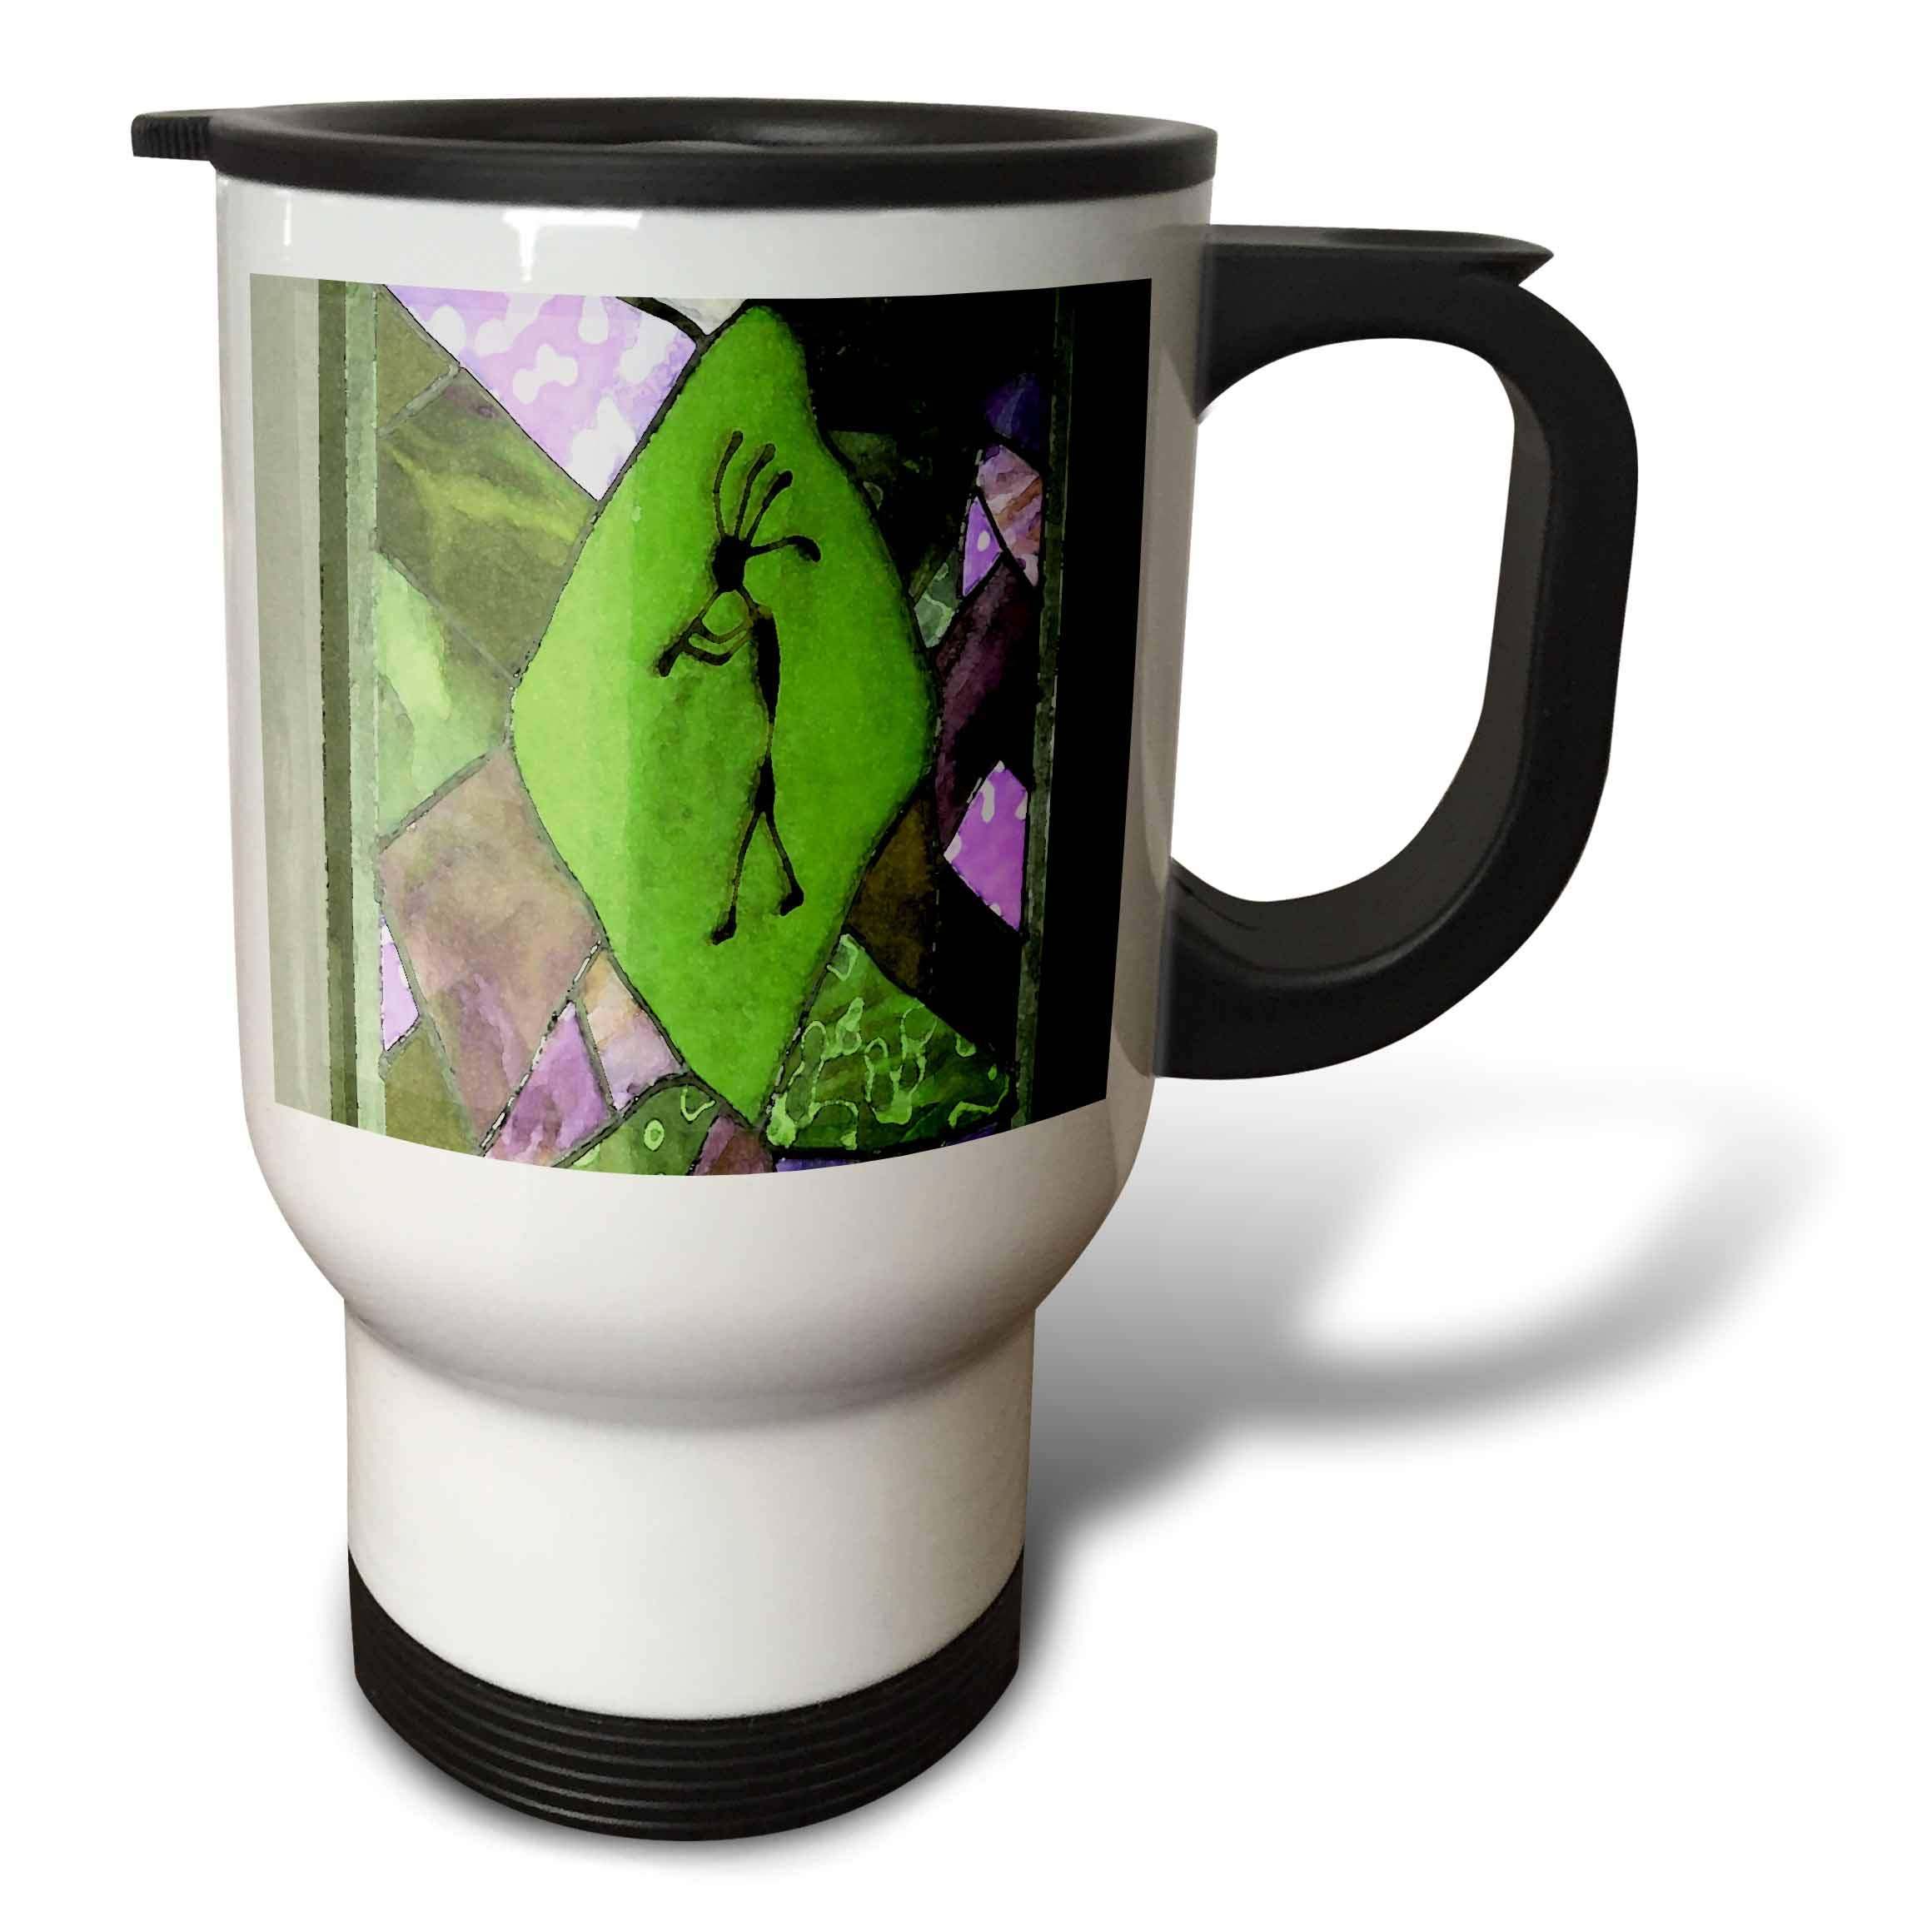 3dRose Jos Fauxtographee- Kayenta Decoration - A design on a window in green and purple with a kayenta look - 14oz Stainless Steel Travel Mug (tm_291082_1)